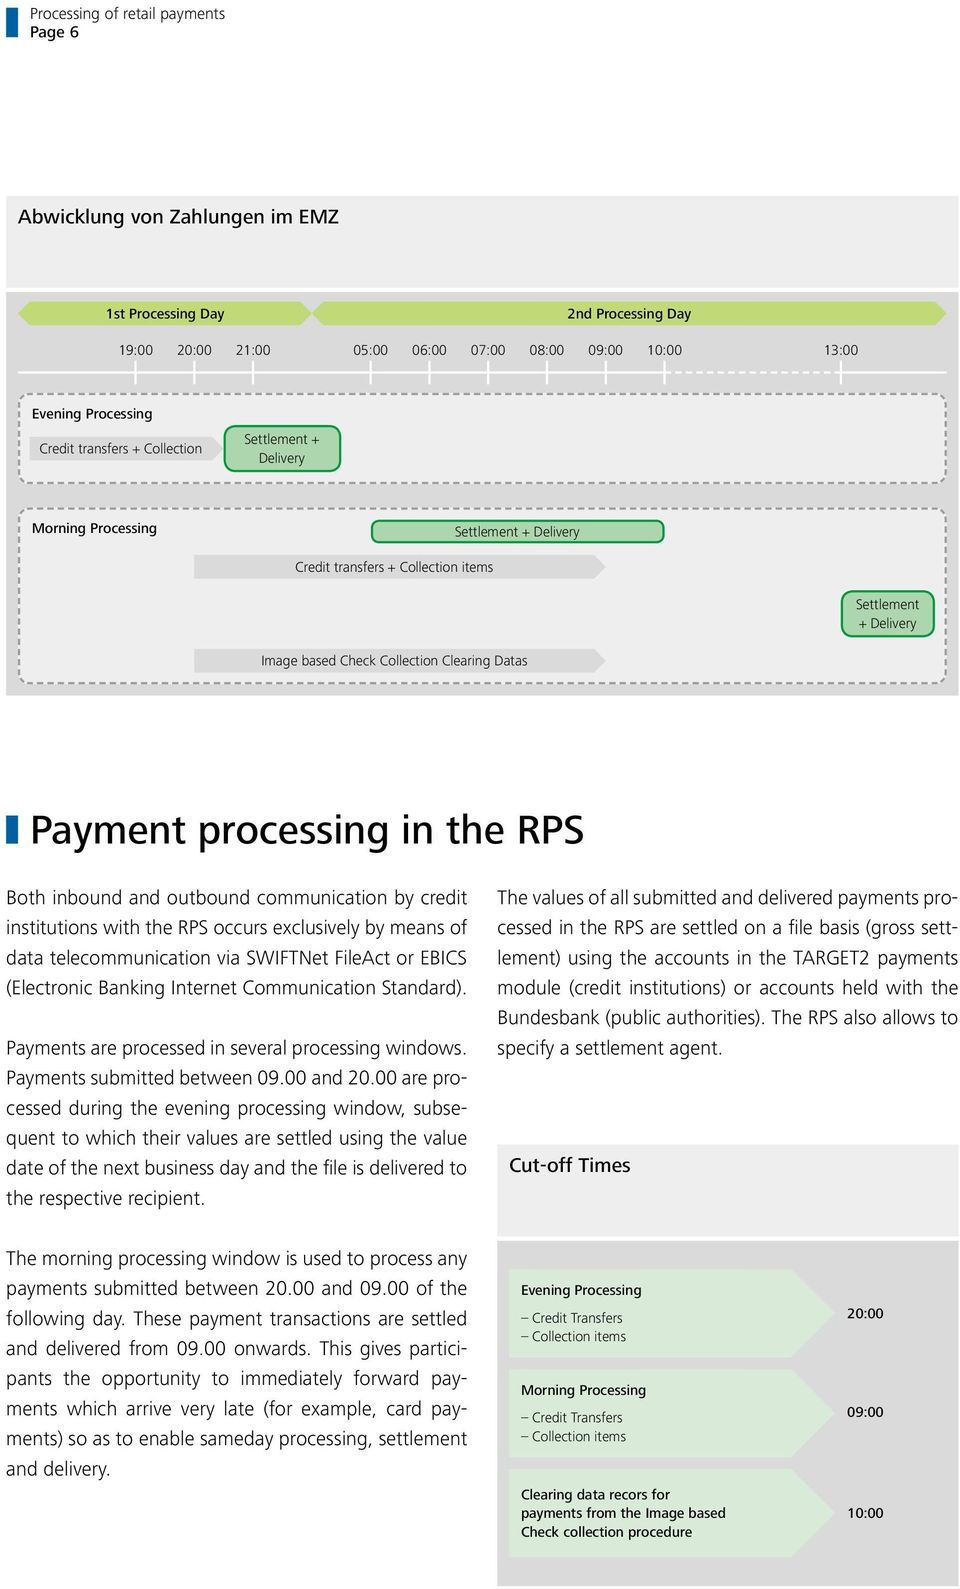 RPS occurs exclusively by means of data telecommunication via SWIFTNet FileAct or EBICS (Electronic Banking Internet Communication Standard). Payments are processed in several processing windows.